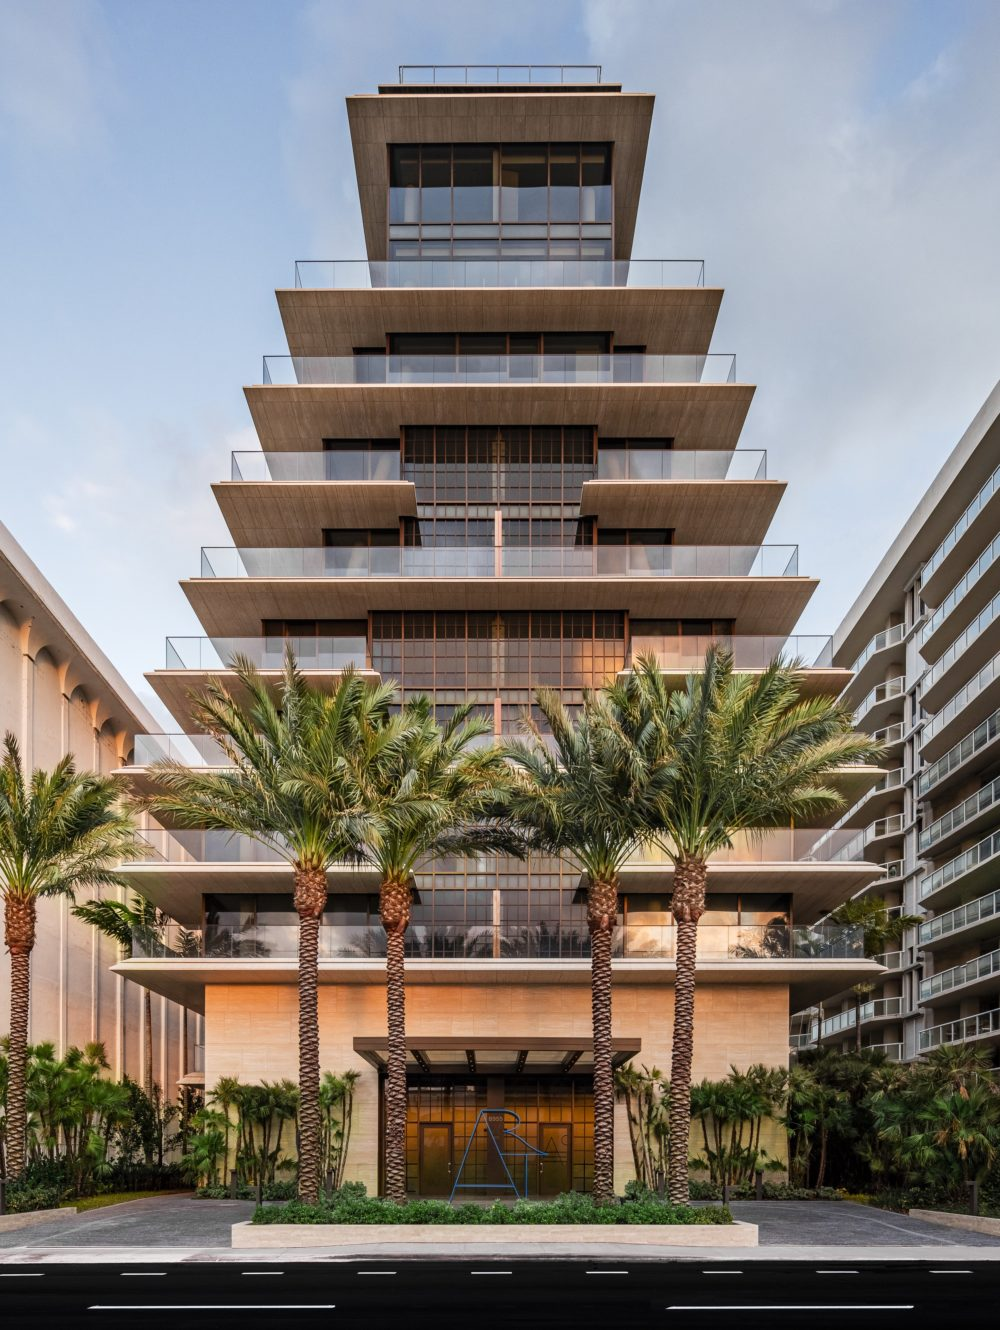 Exterior view of Arte Surfside condominiums entrance. Has oceanfront view, palm trees and full architectural details.